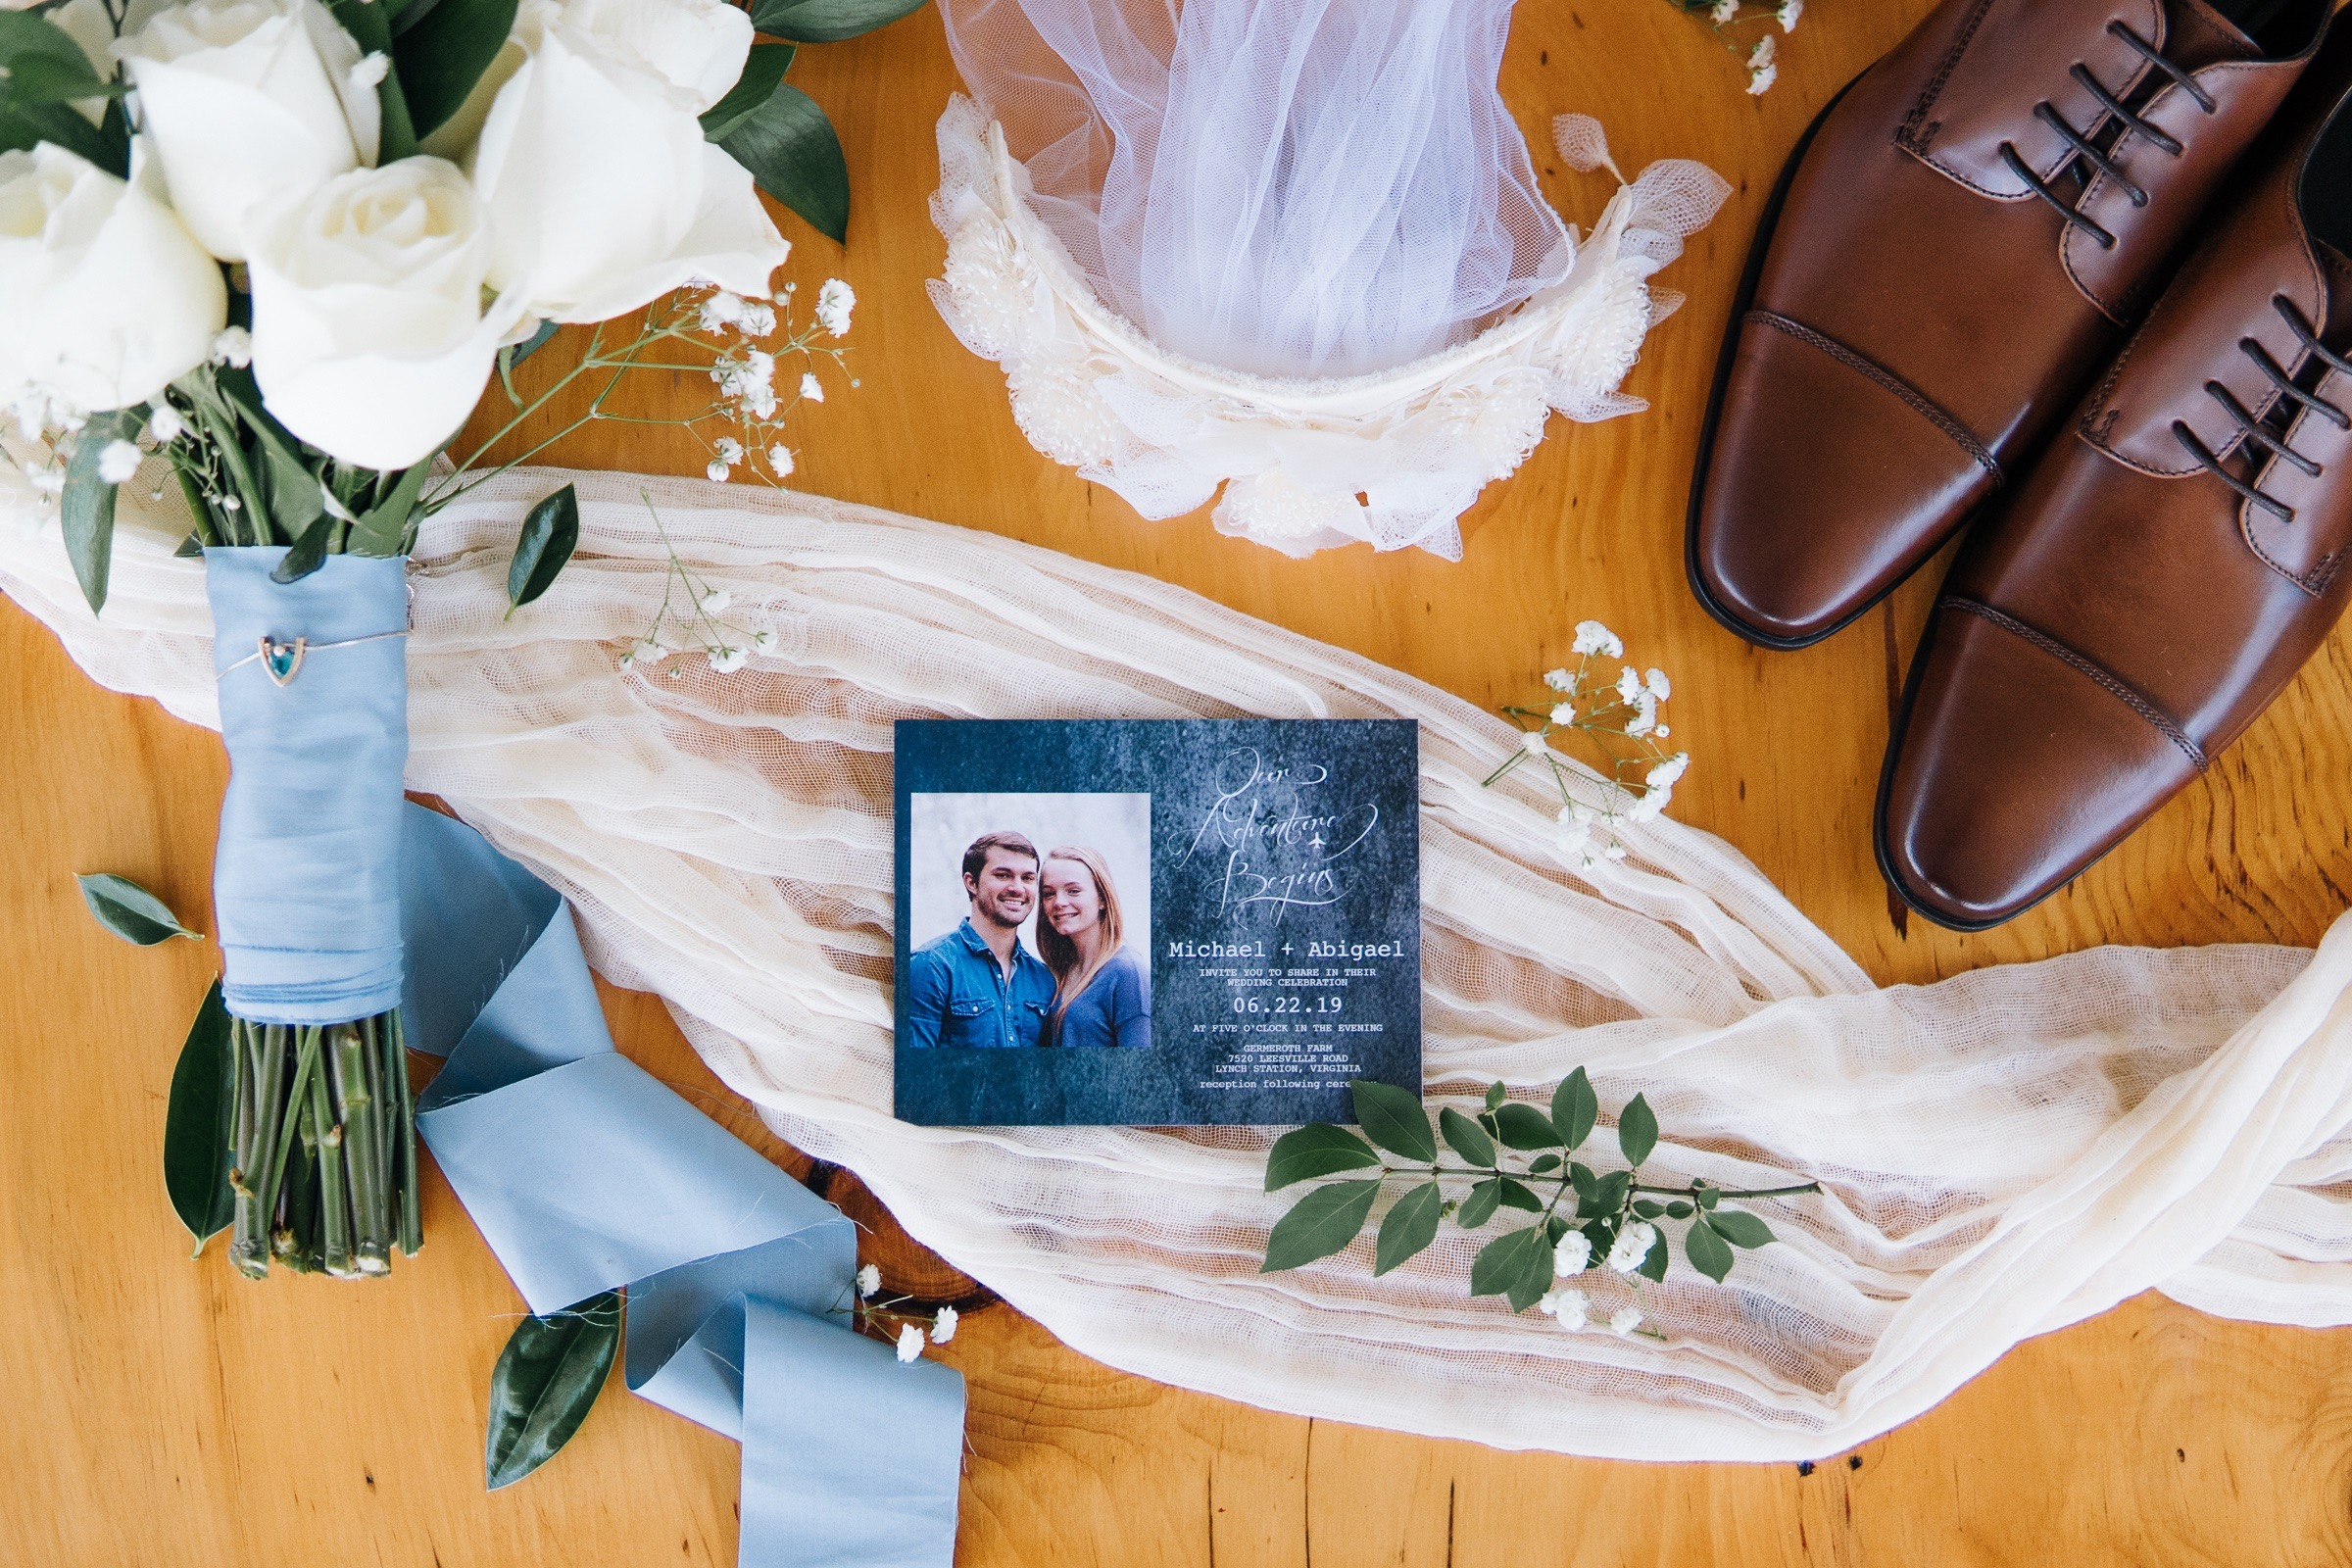 Michael and Abigael Virginia Warehouse Industrial Boho Wedding in Blue and Ivory by Jonathan Hannah Photography-4.jpg